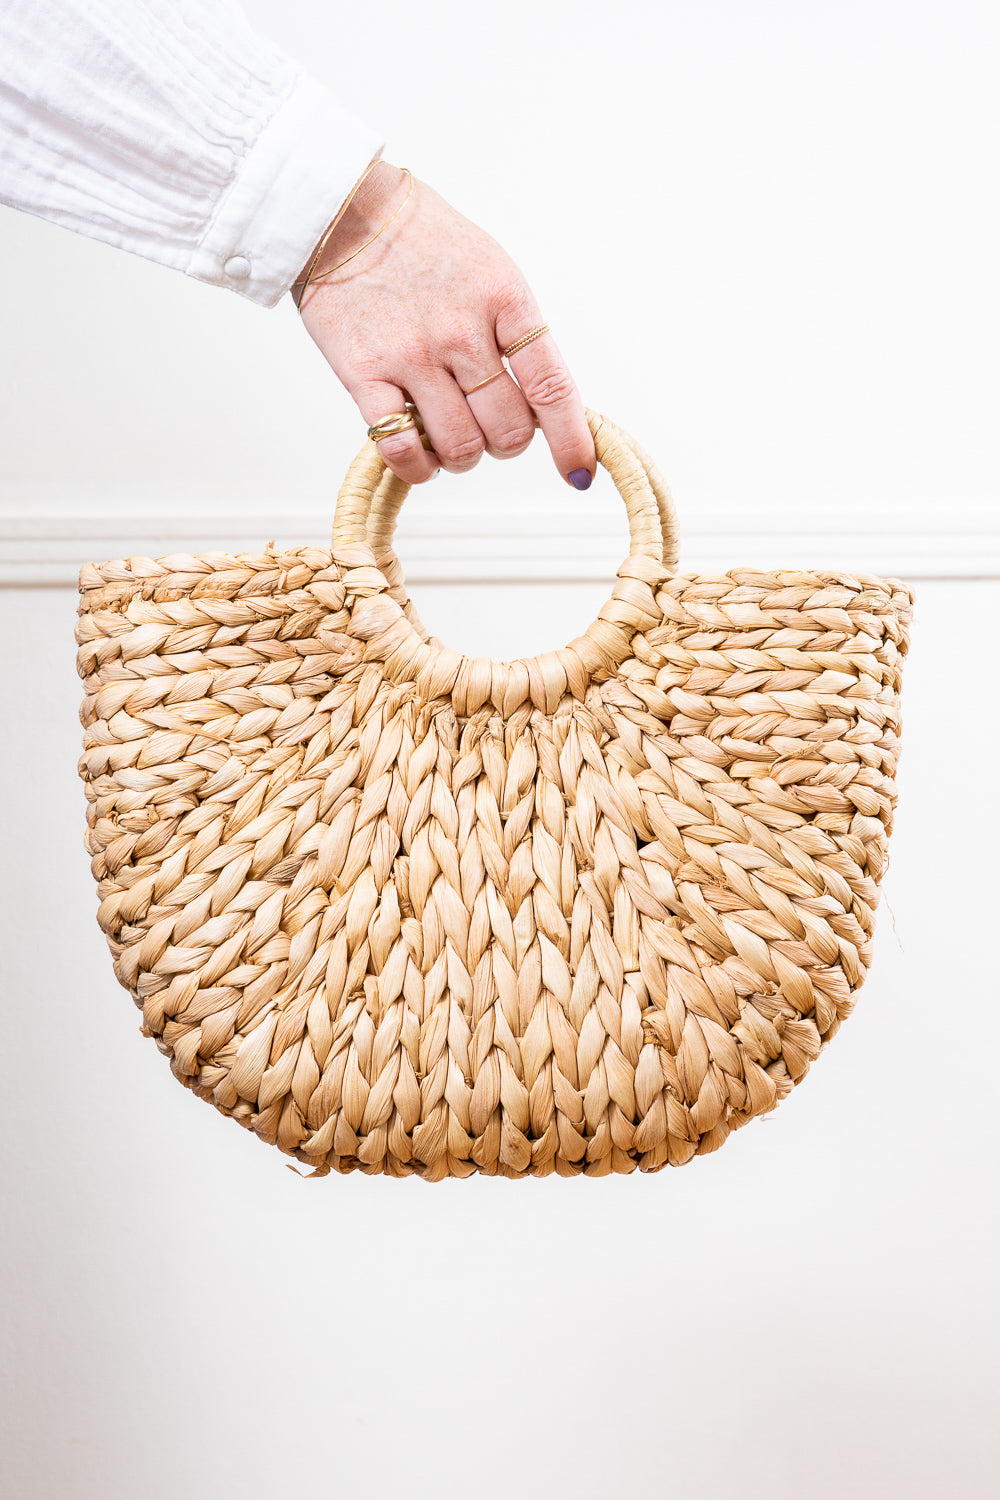 natural raffia straw rattan tote hand bag held in hand Janna Conner